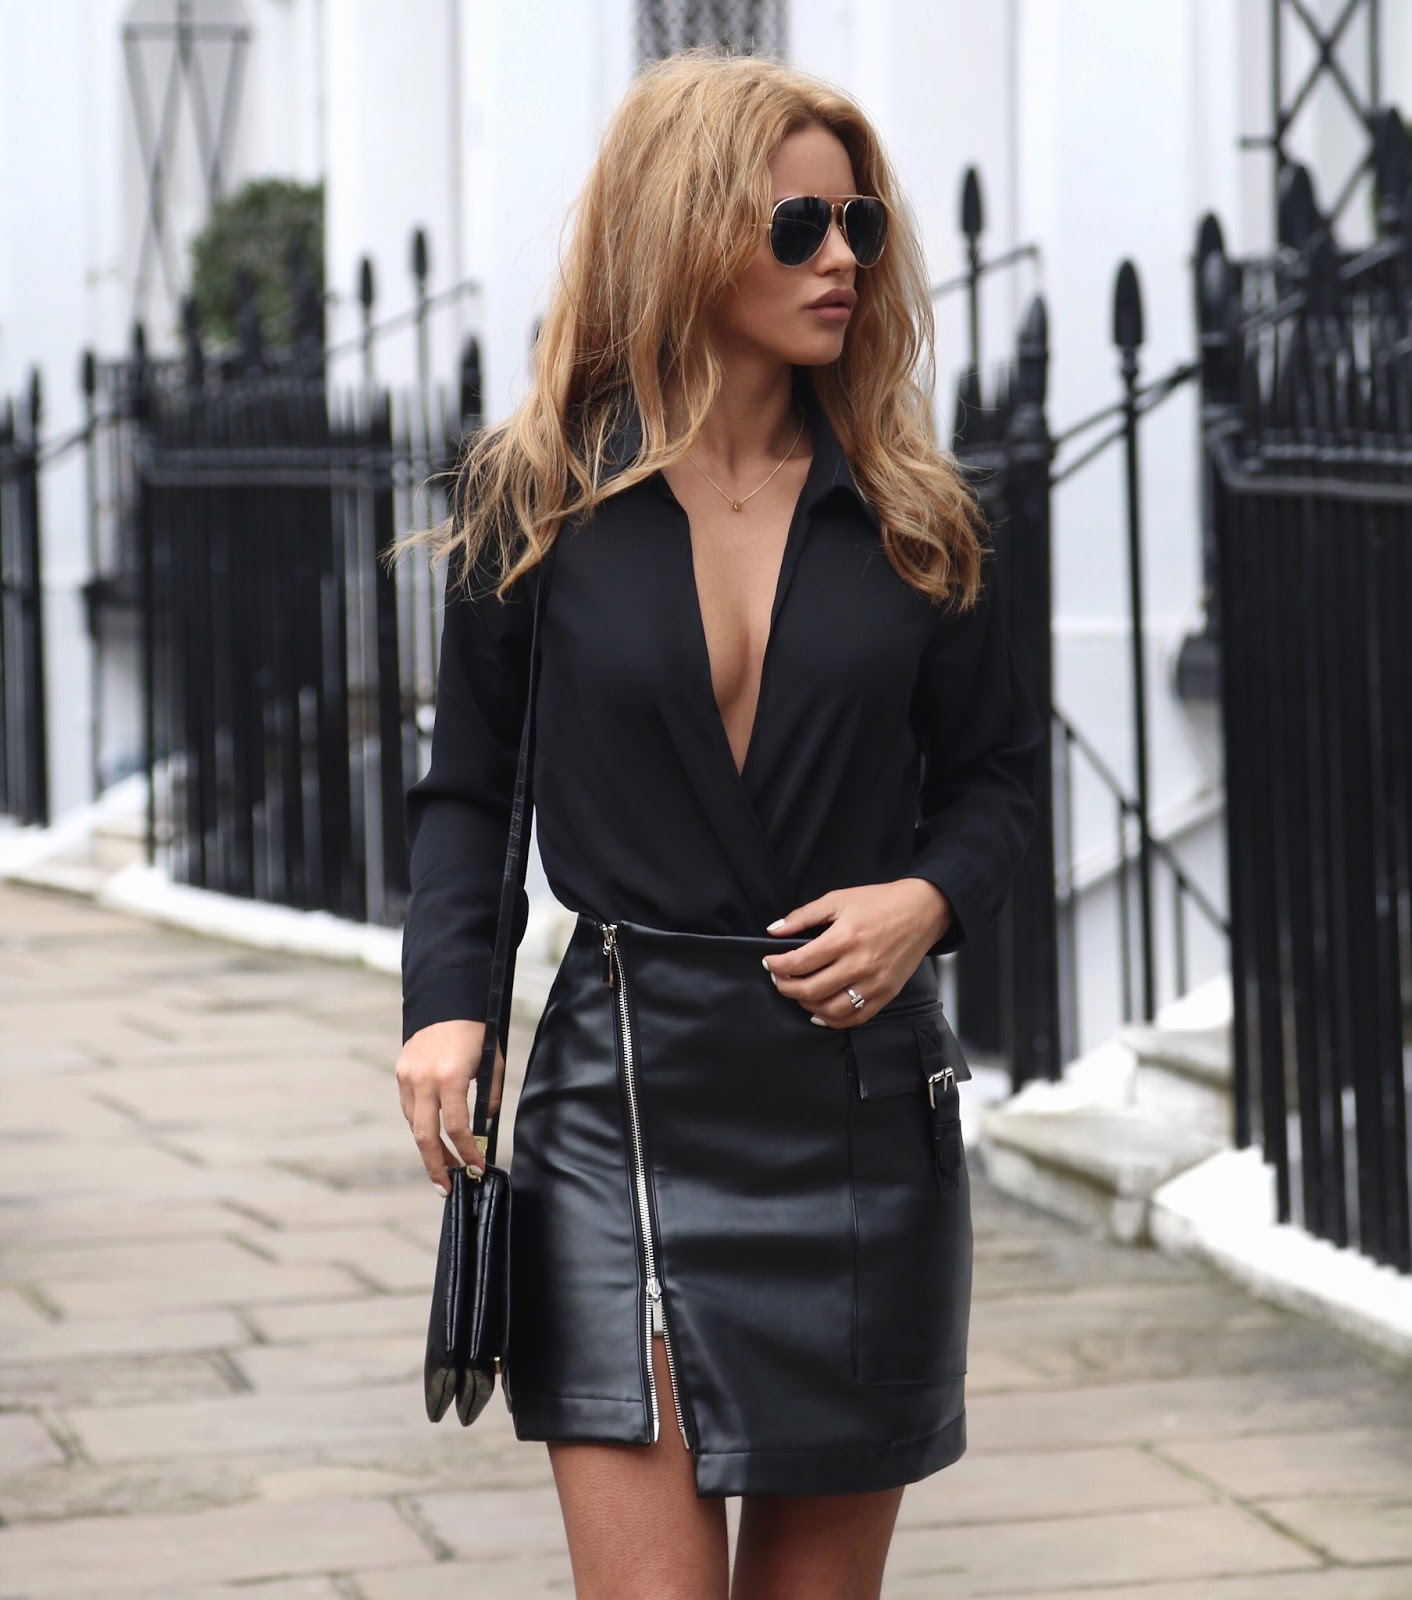 Leather skirt with zip – Your skirt this season photo blog